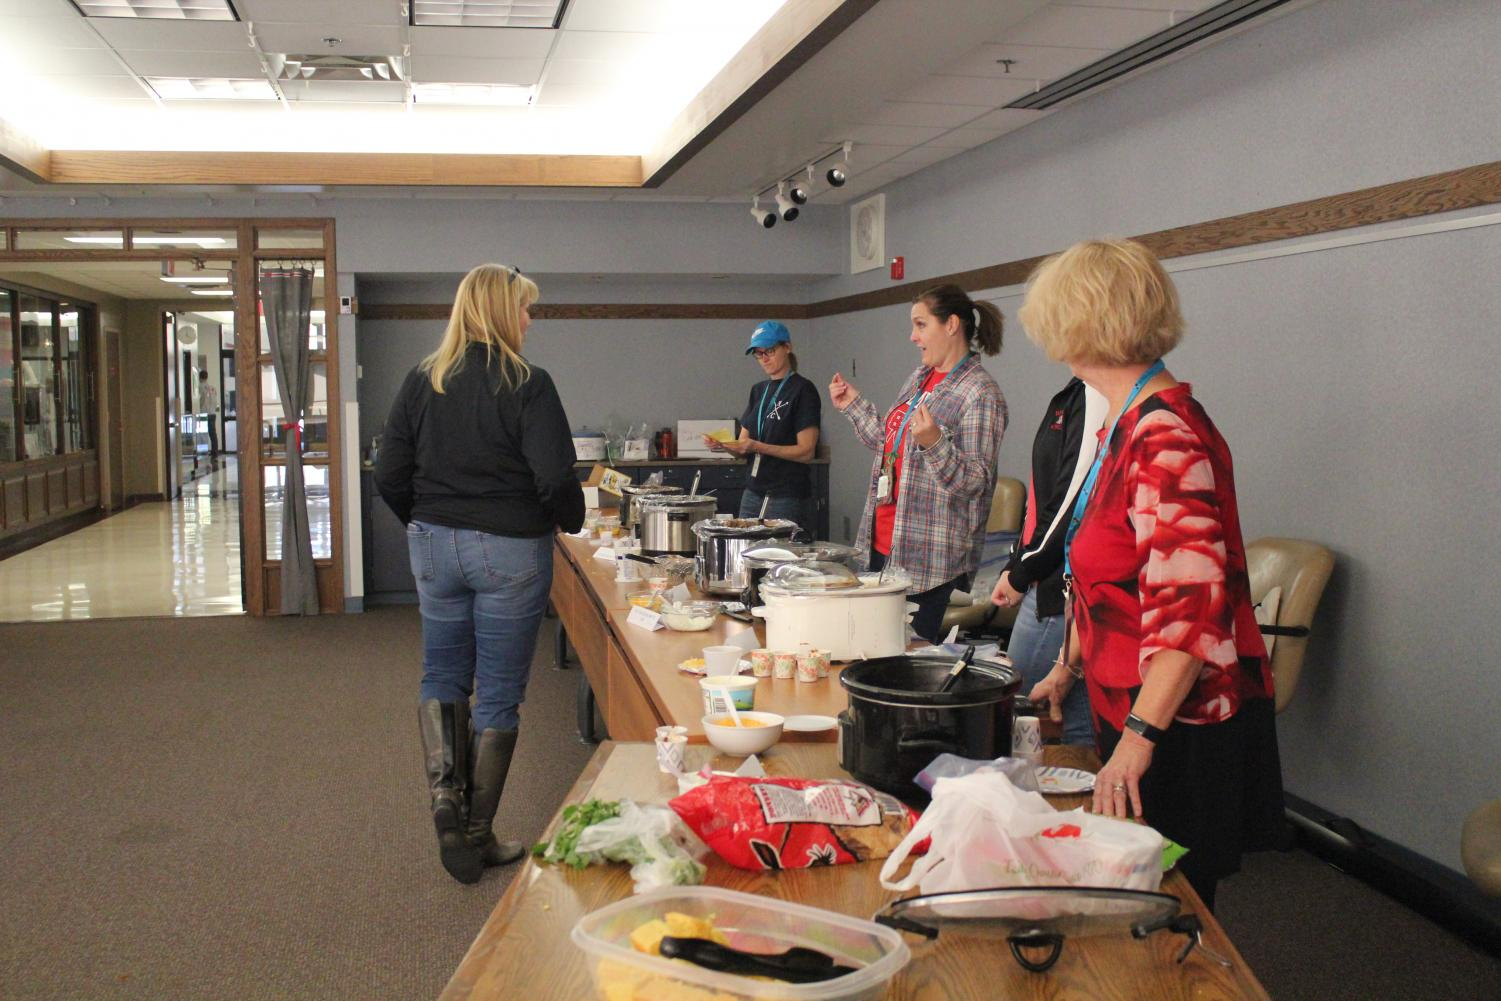 Teachers sampled chili and voted on their favorite concoction. This bake-off encourages teachers to participate in events during American Education Week.